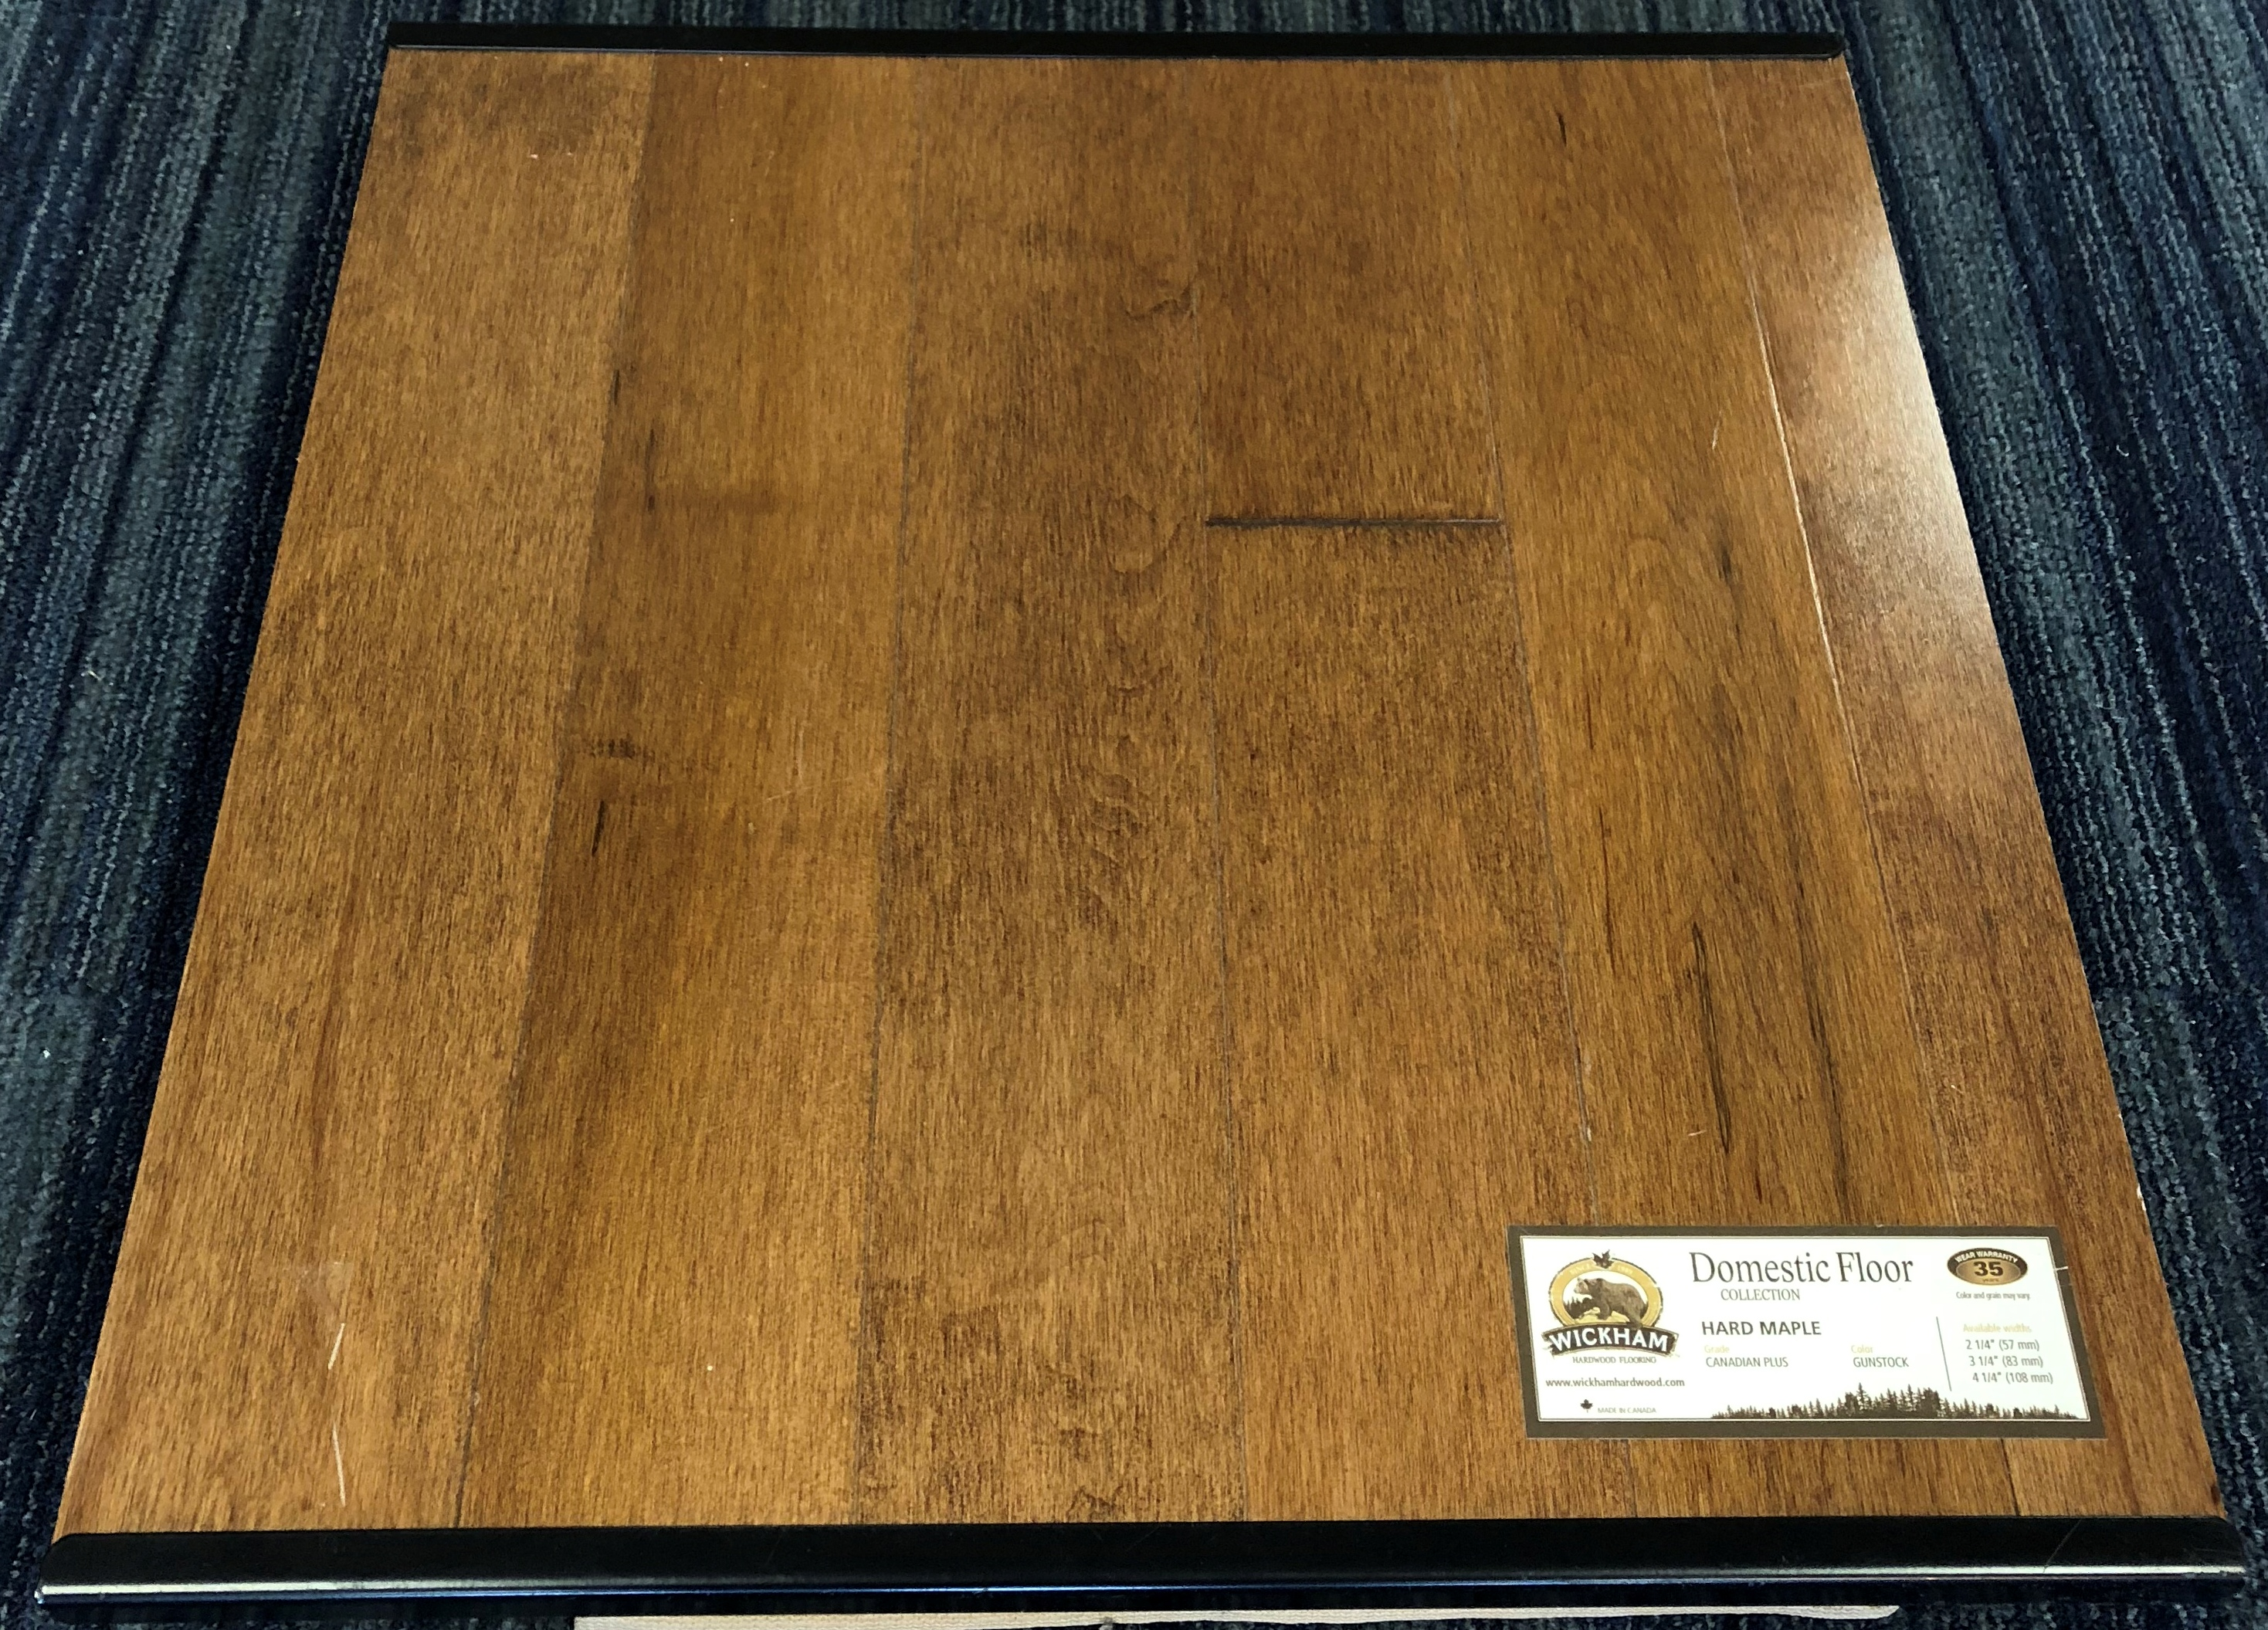 Gunstock Wickham Maple Domestic Hardwood Flooring Image